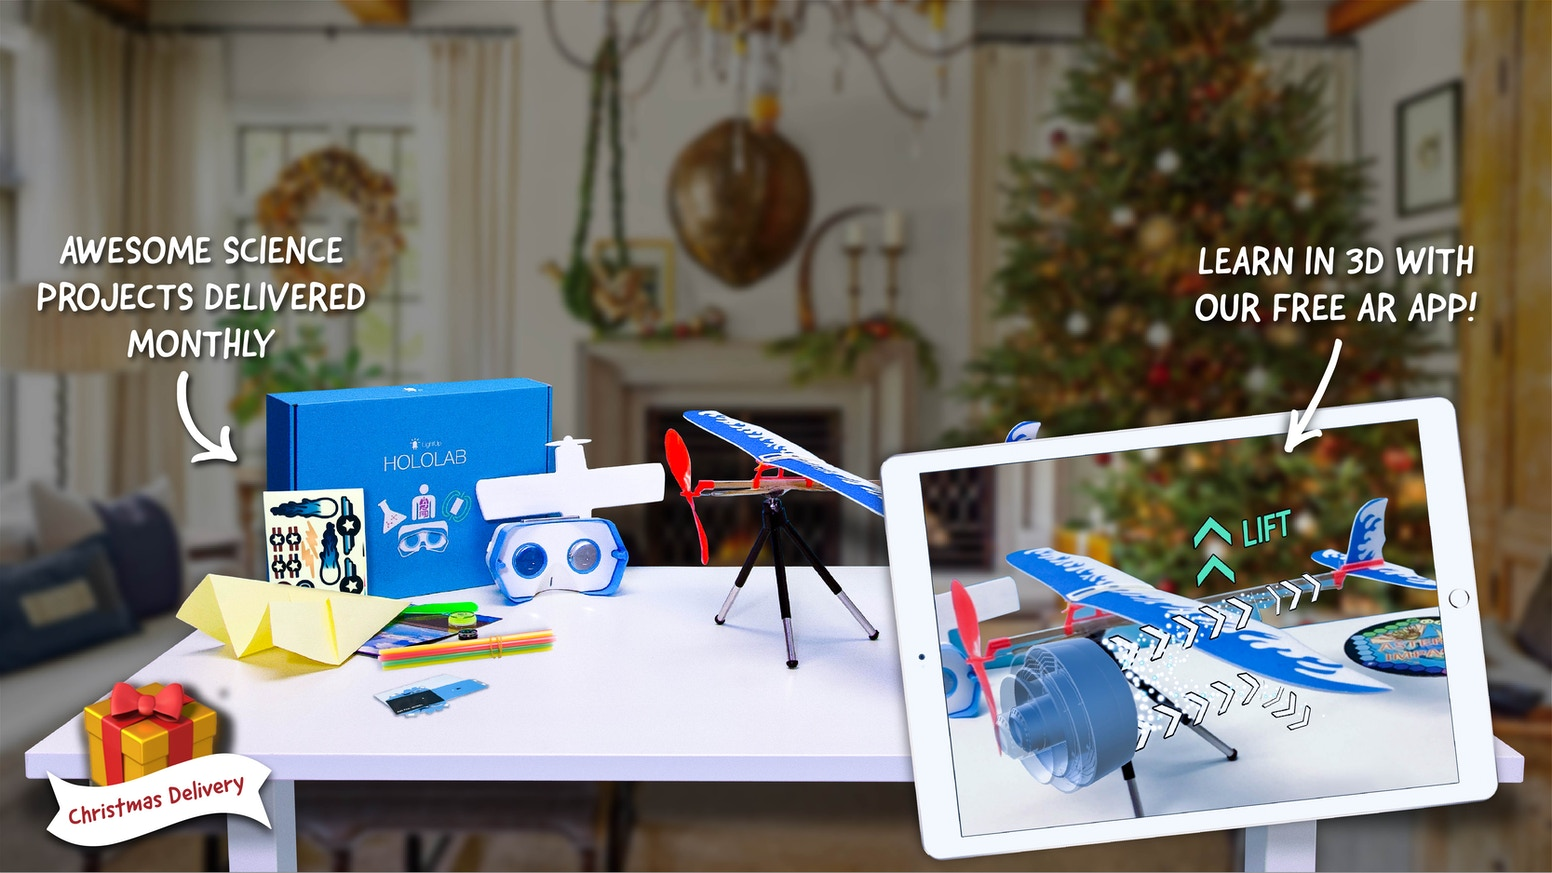 A futuristic 3D learning experience, delivered in a monthly box. Hands-on projects + AR teach kids about climate change, AI & space!